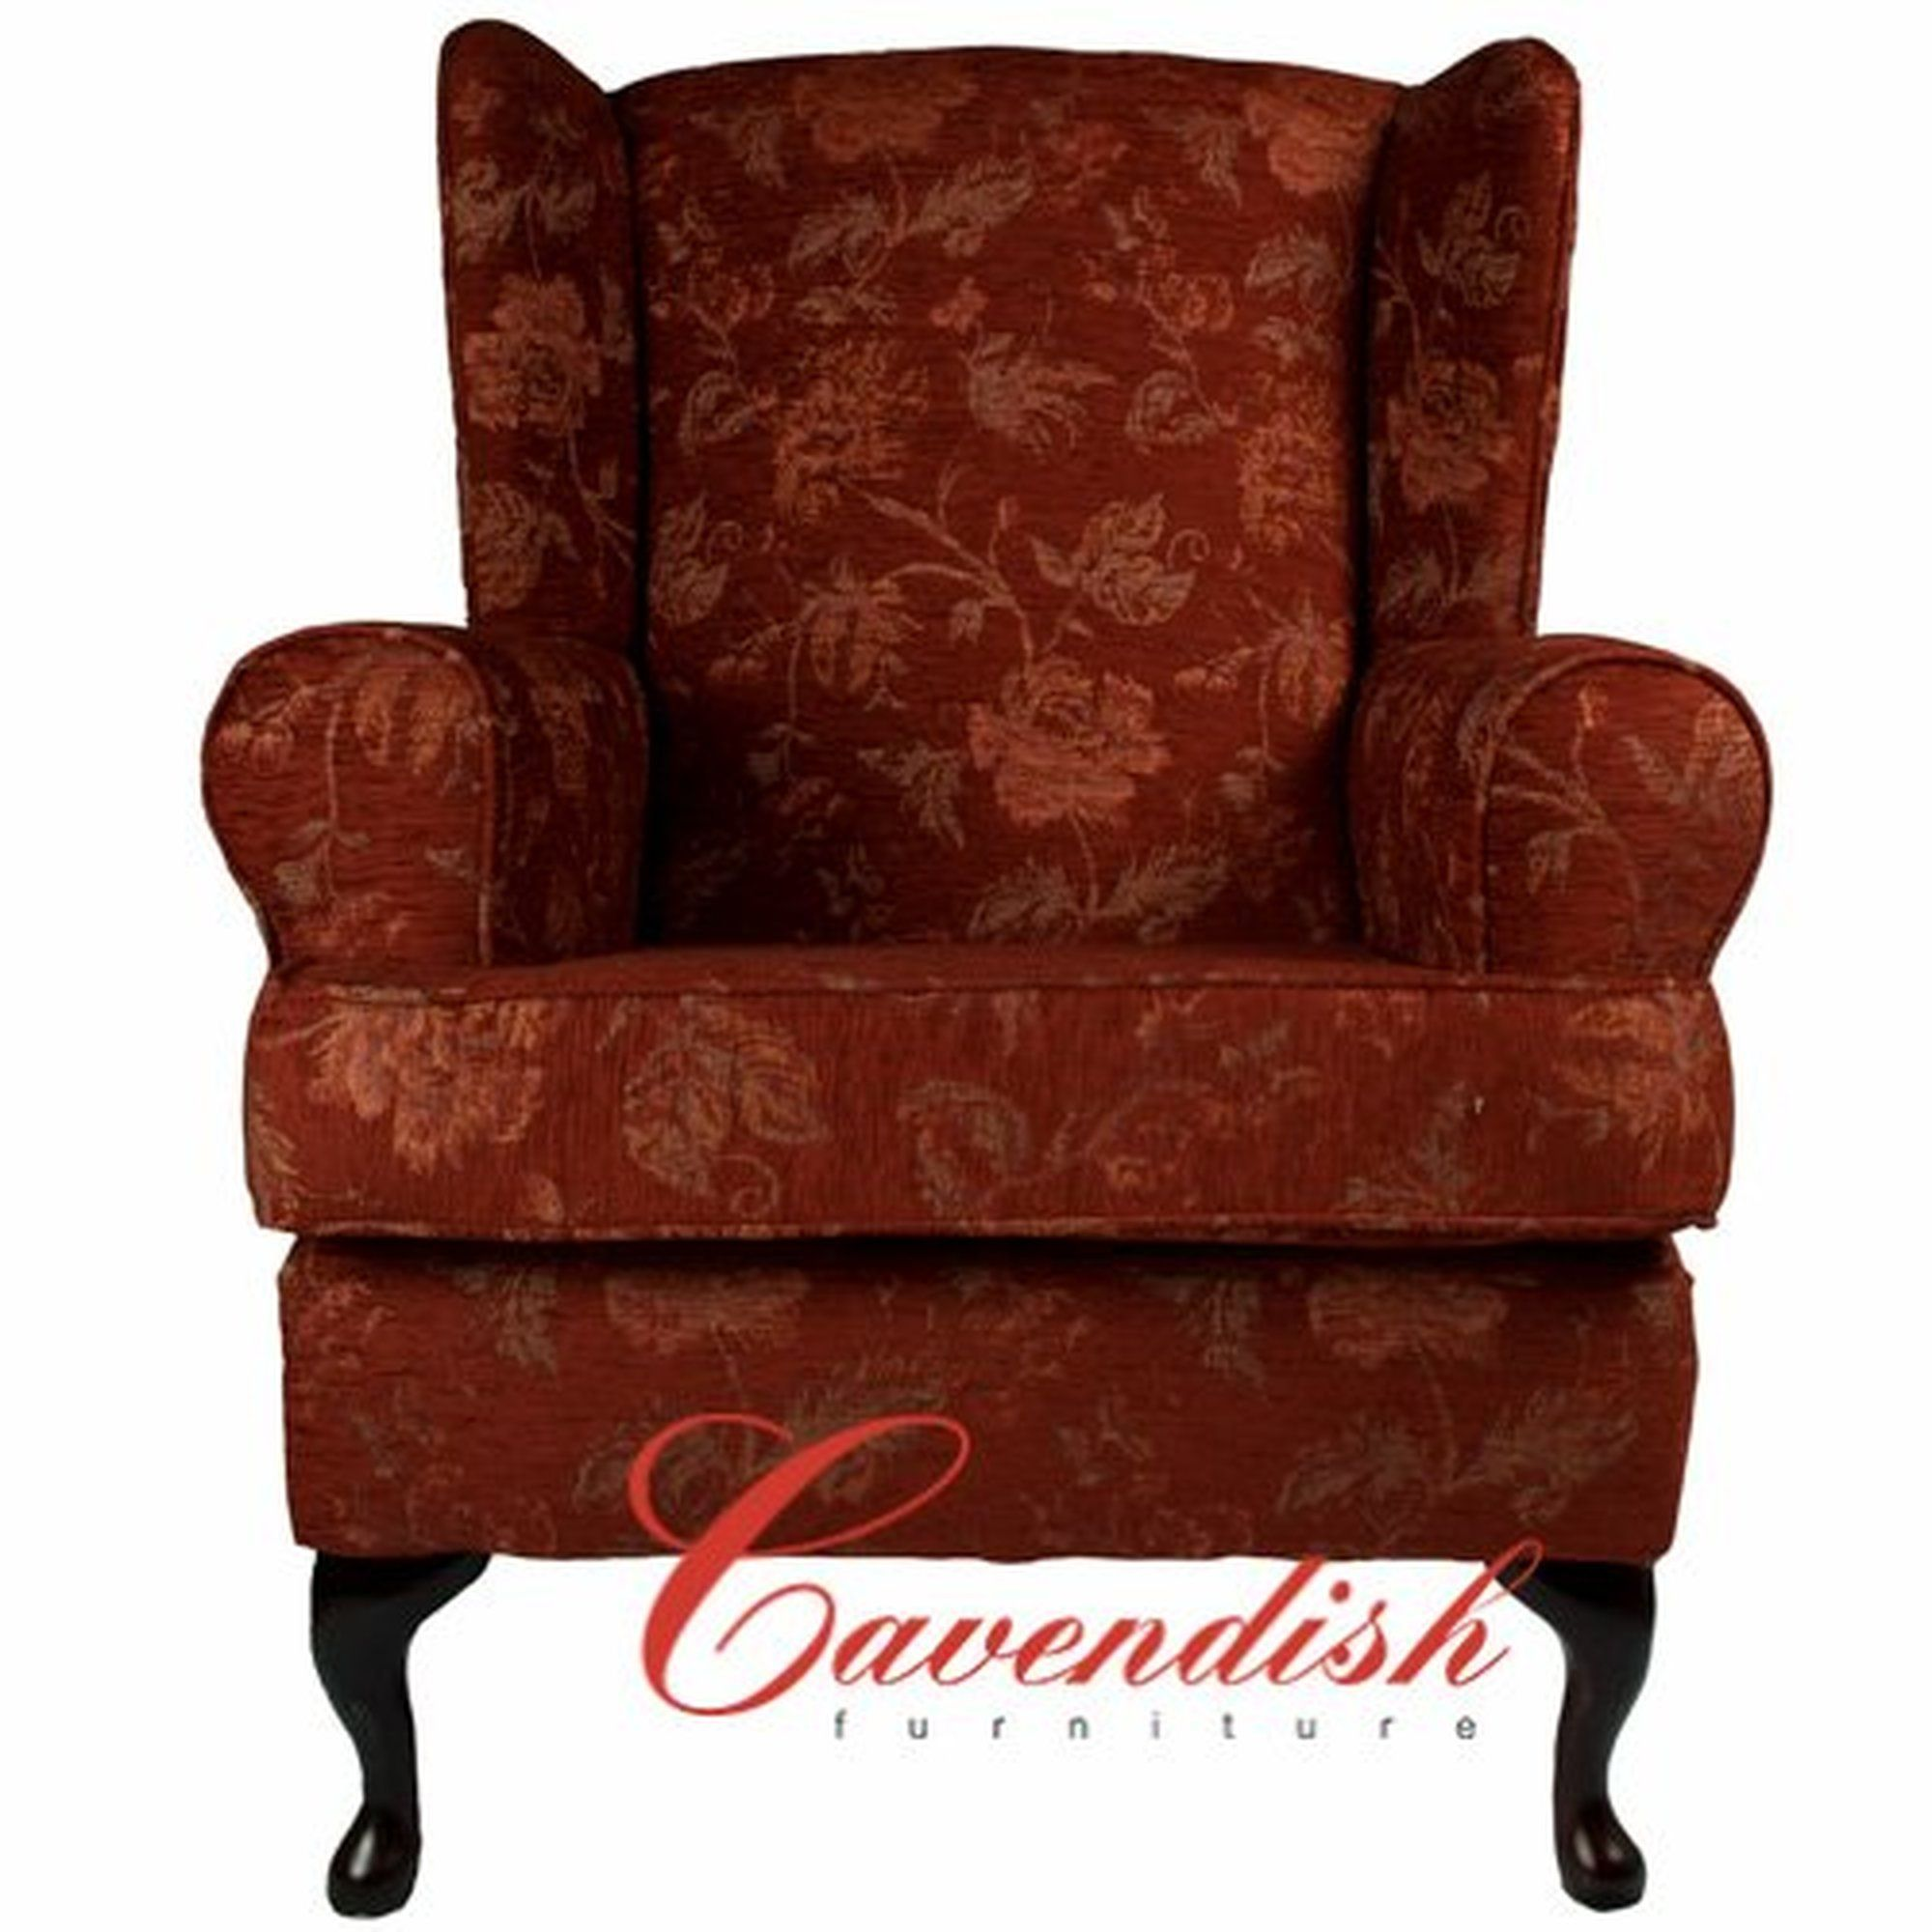 Luxury Orthopedic Chair In Floral Terracotta Fabric. £299.99